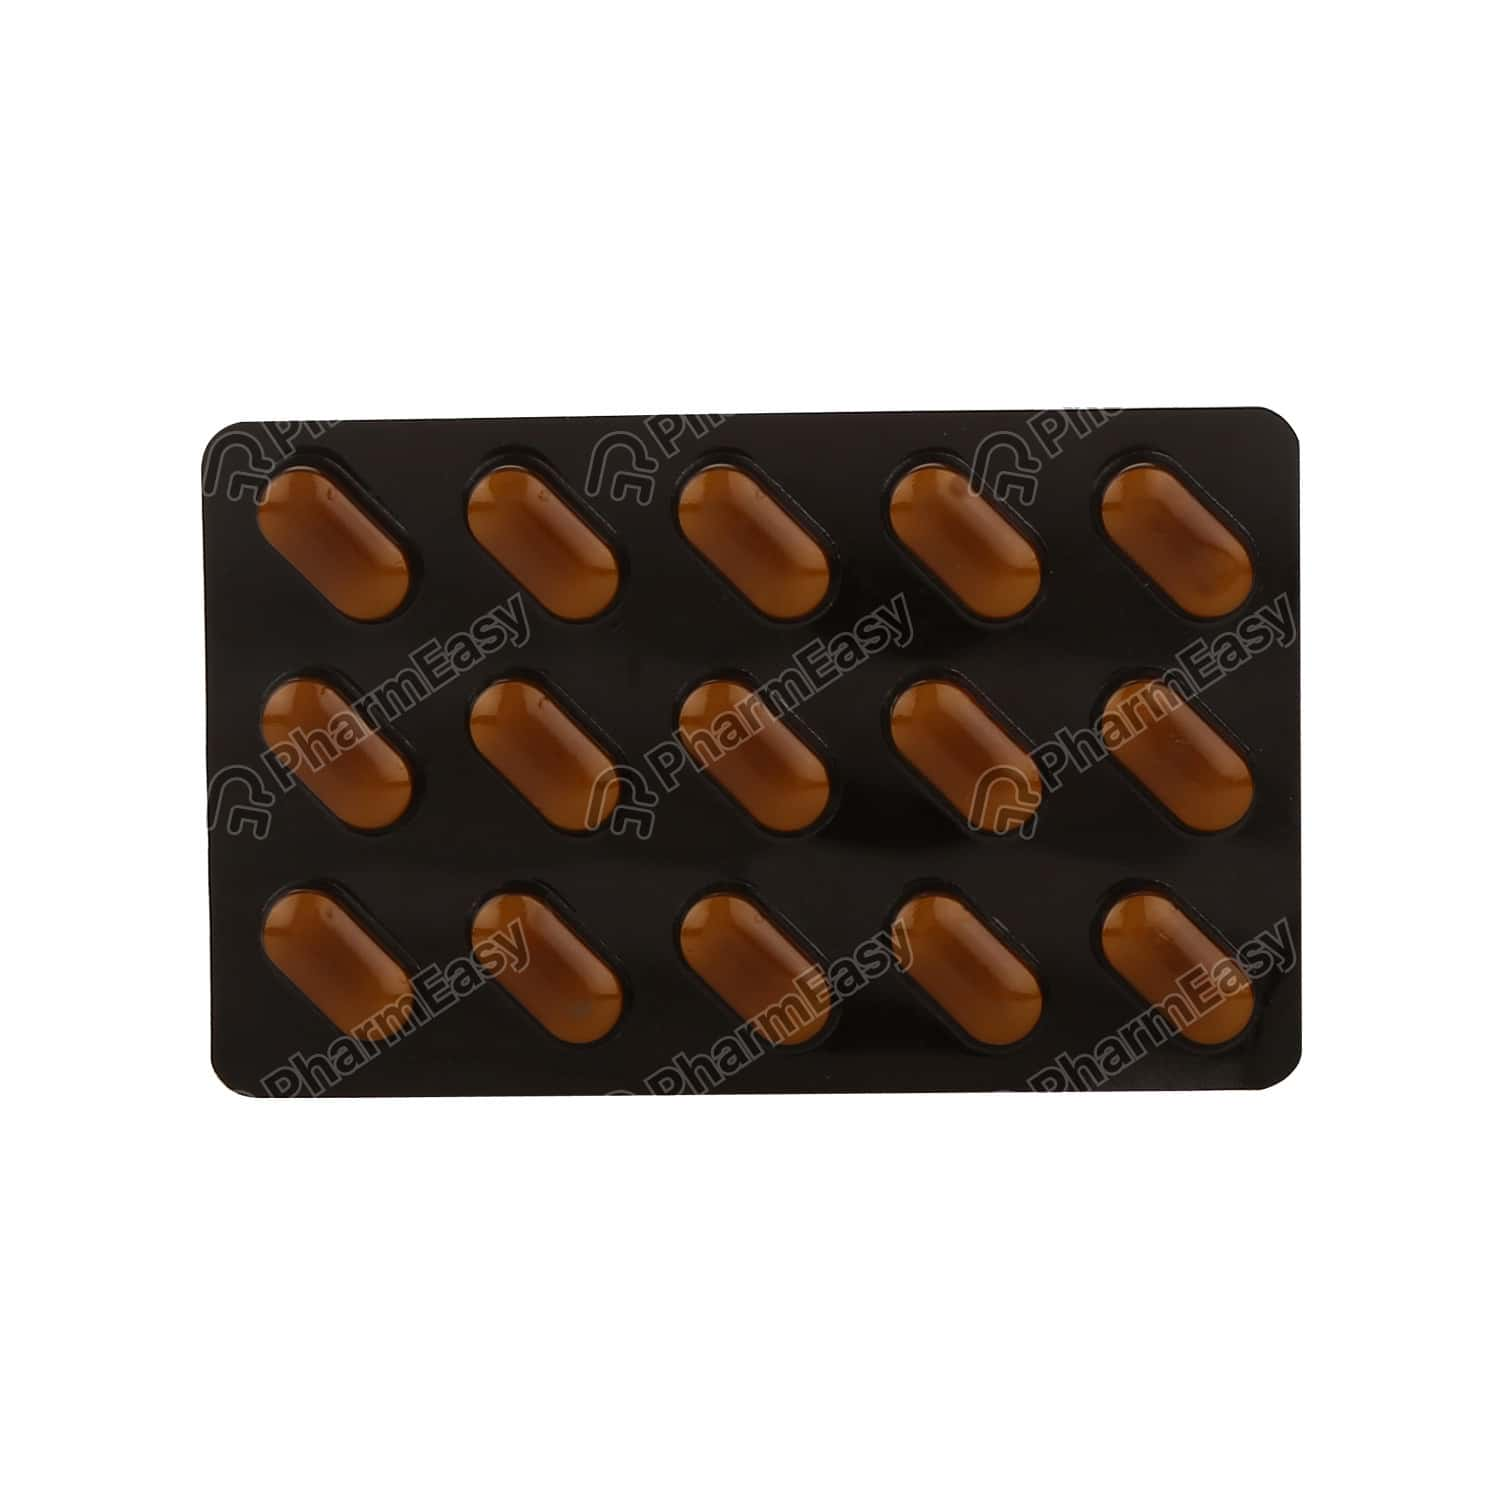 Calcifit Forte Strip Of 15 Tablets